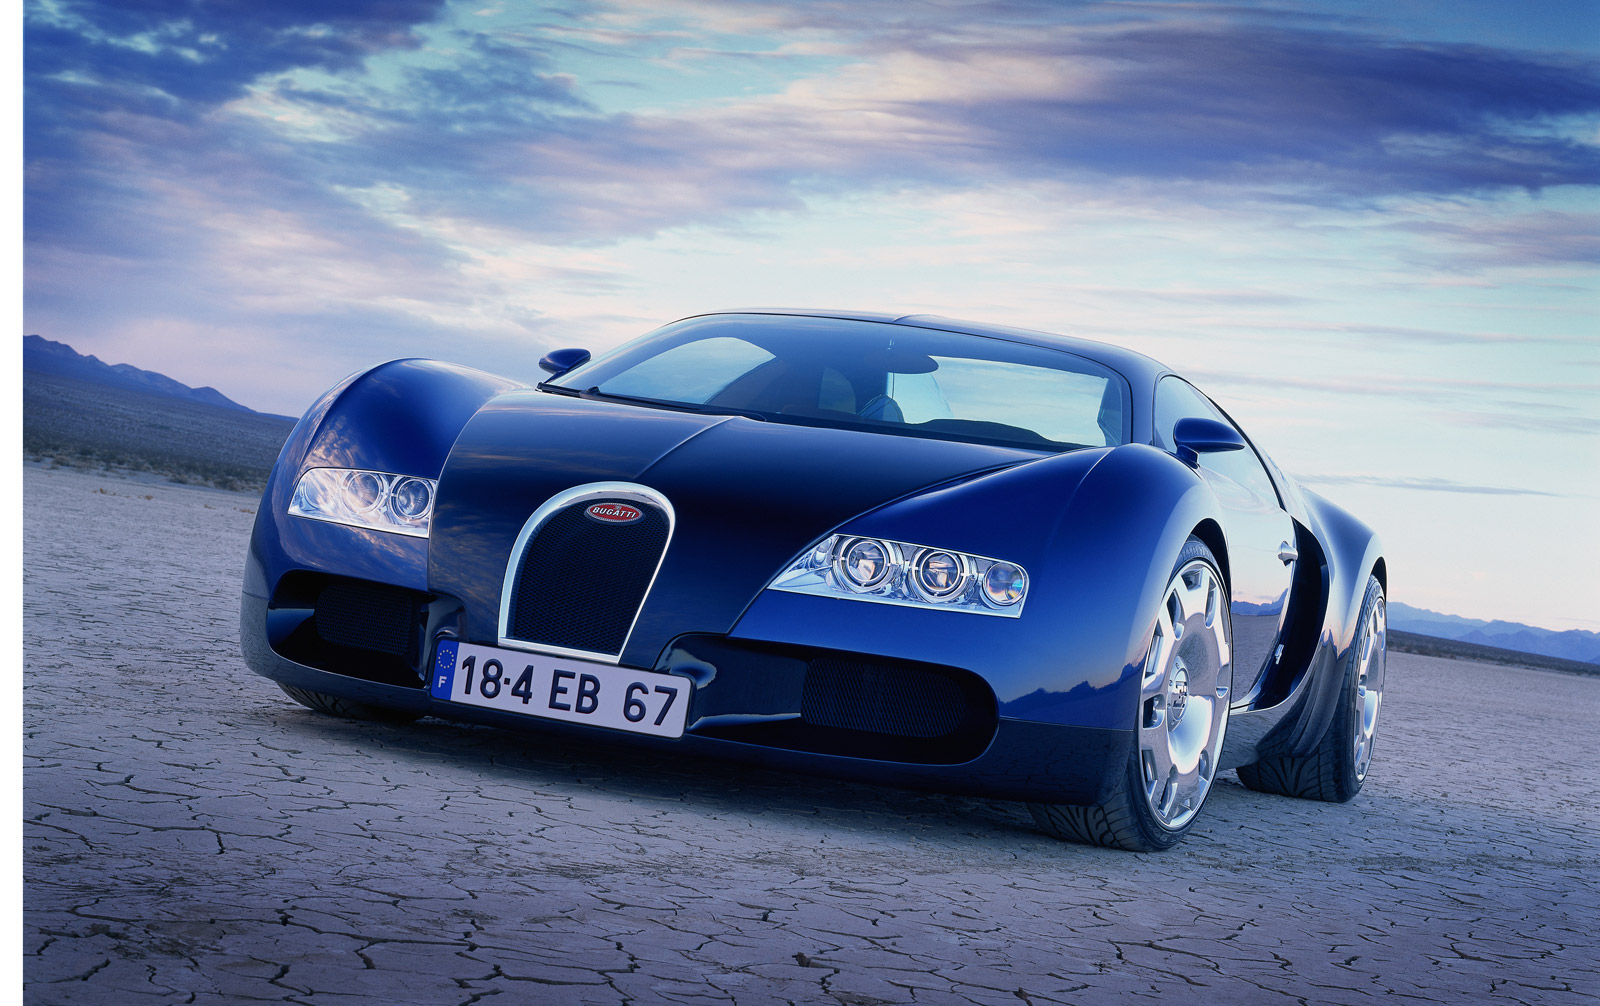 Original Bugatti Veyron Eb 18 4 Concept Headed To Salon